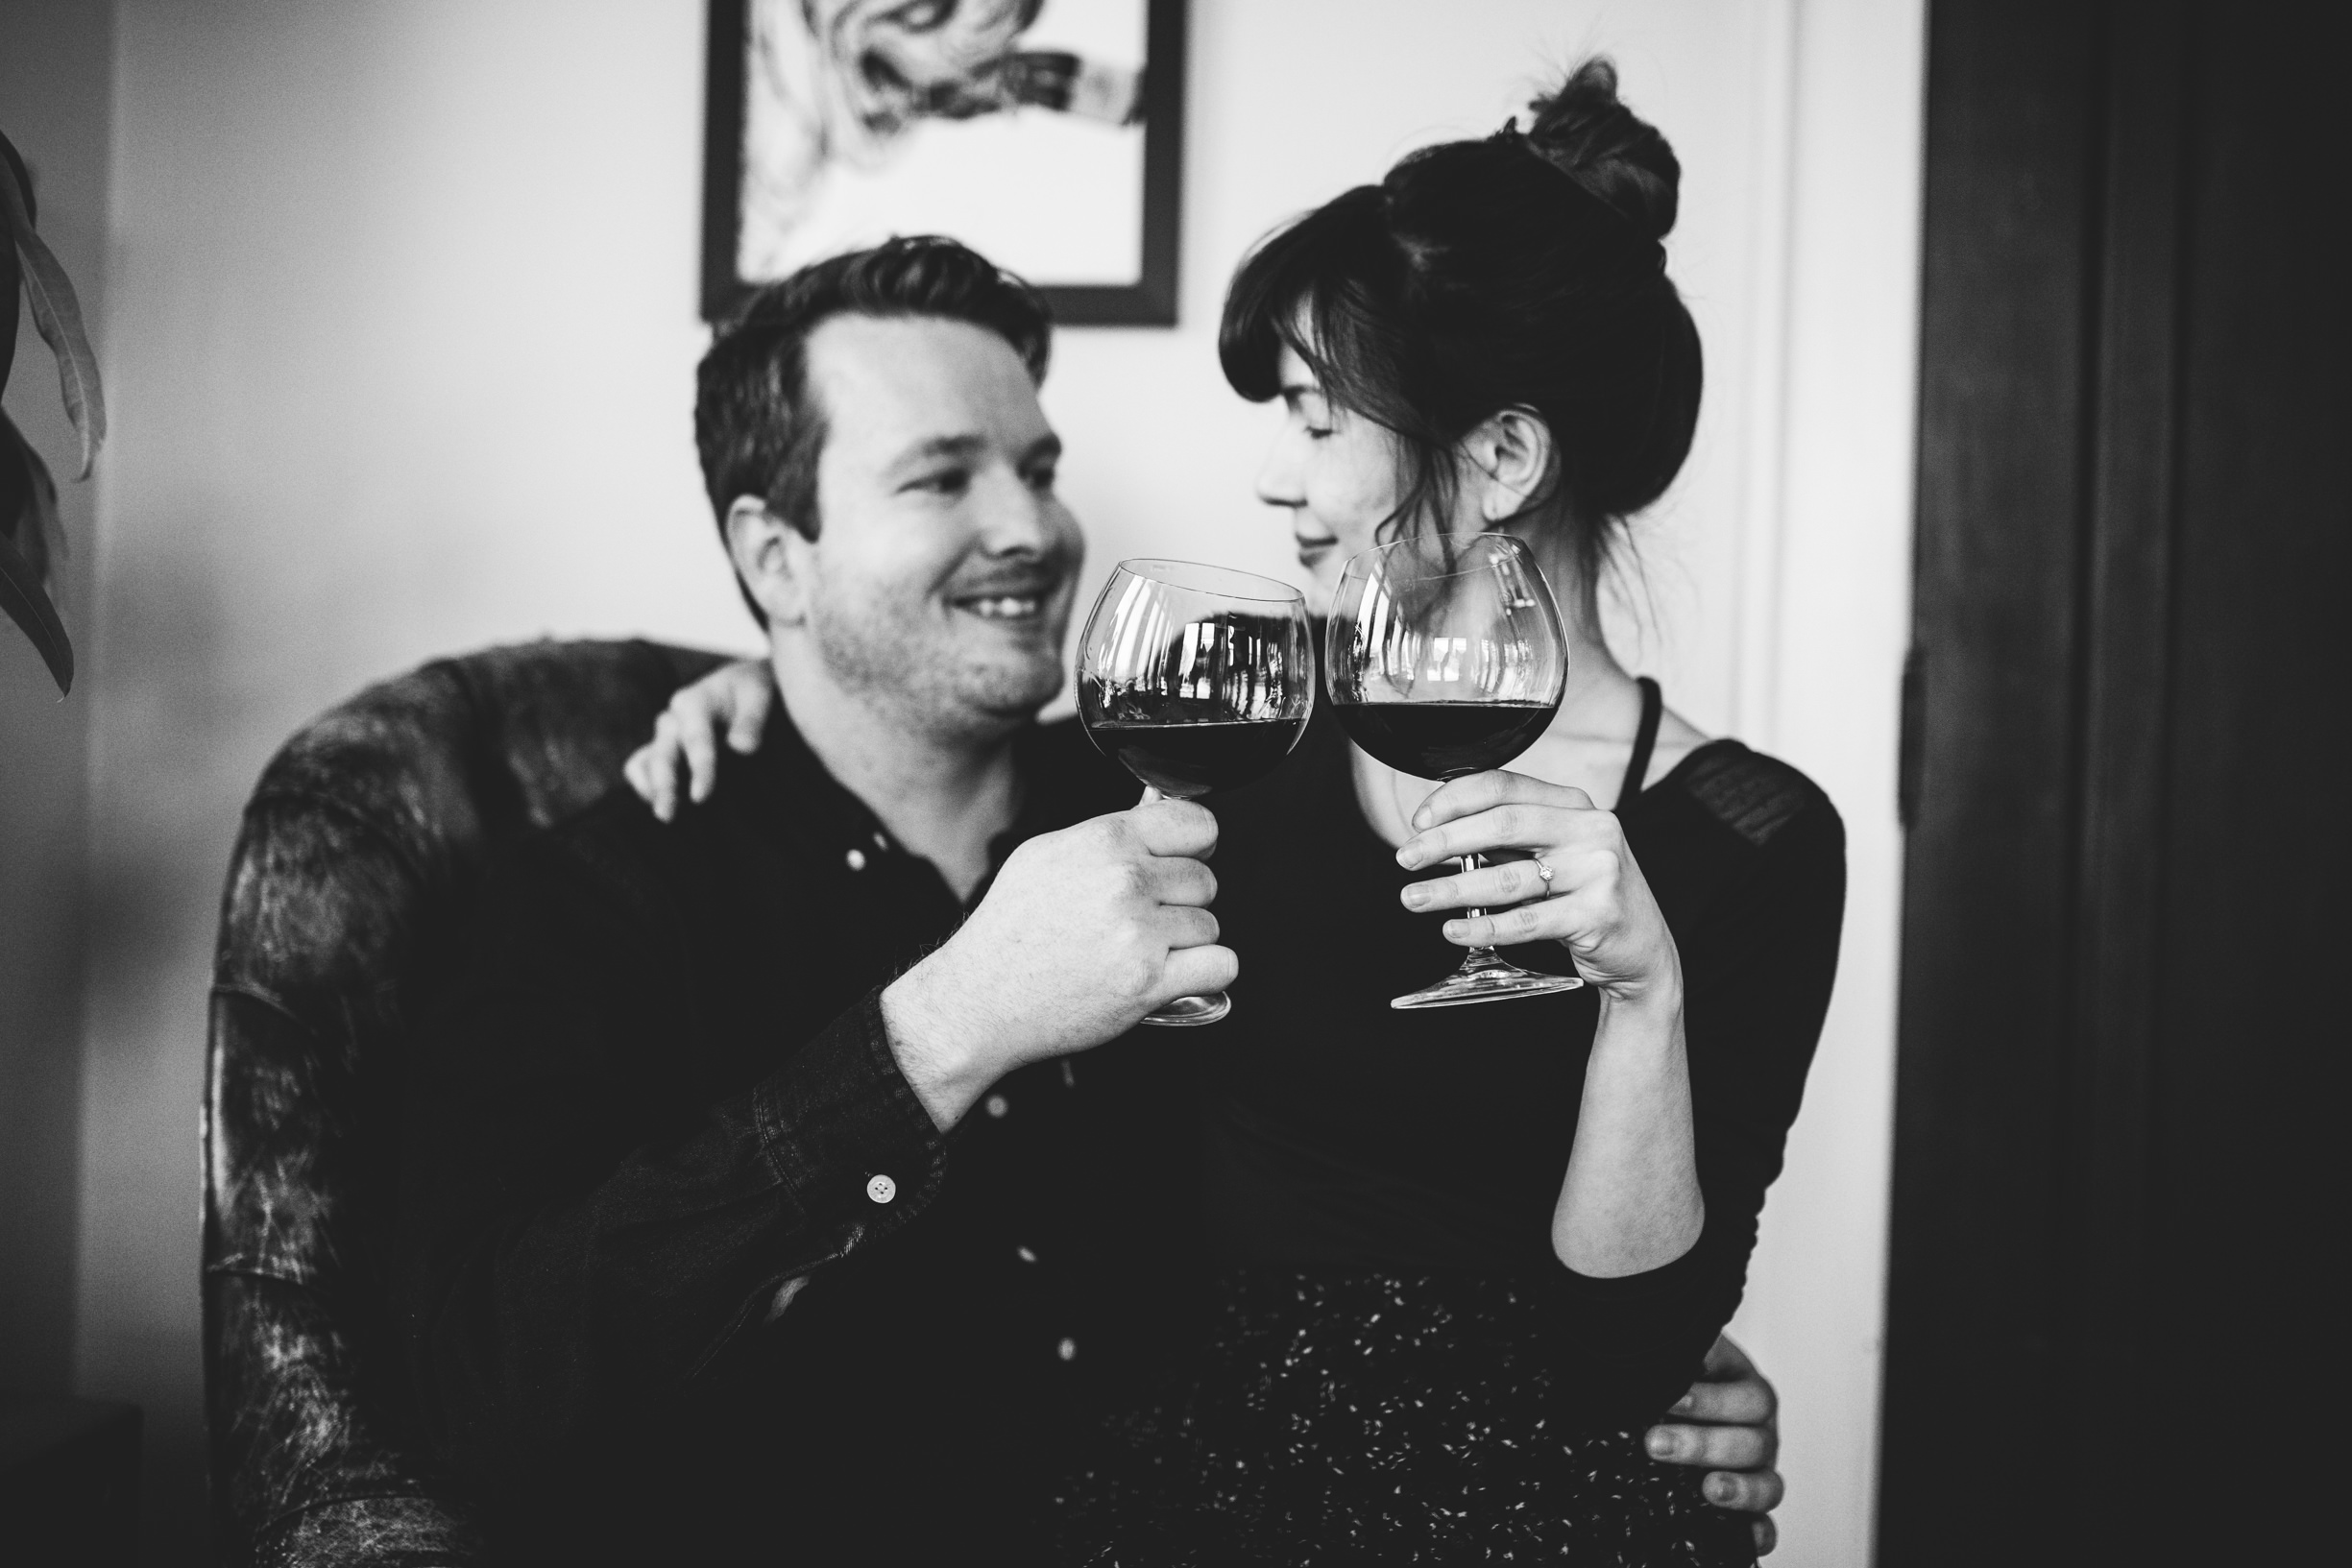 louisville-engagement-photographer-record-store-in-home-session-crystal-ludwick-photo (14 of 53).jpg